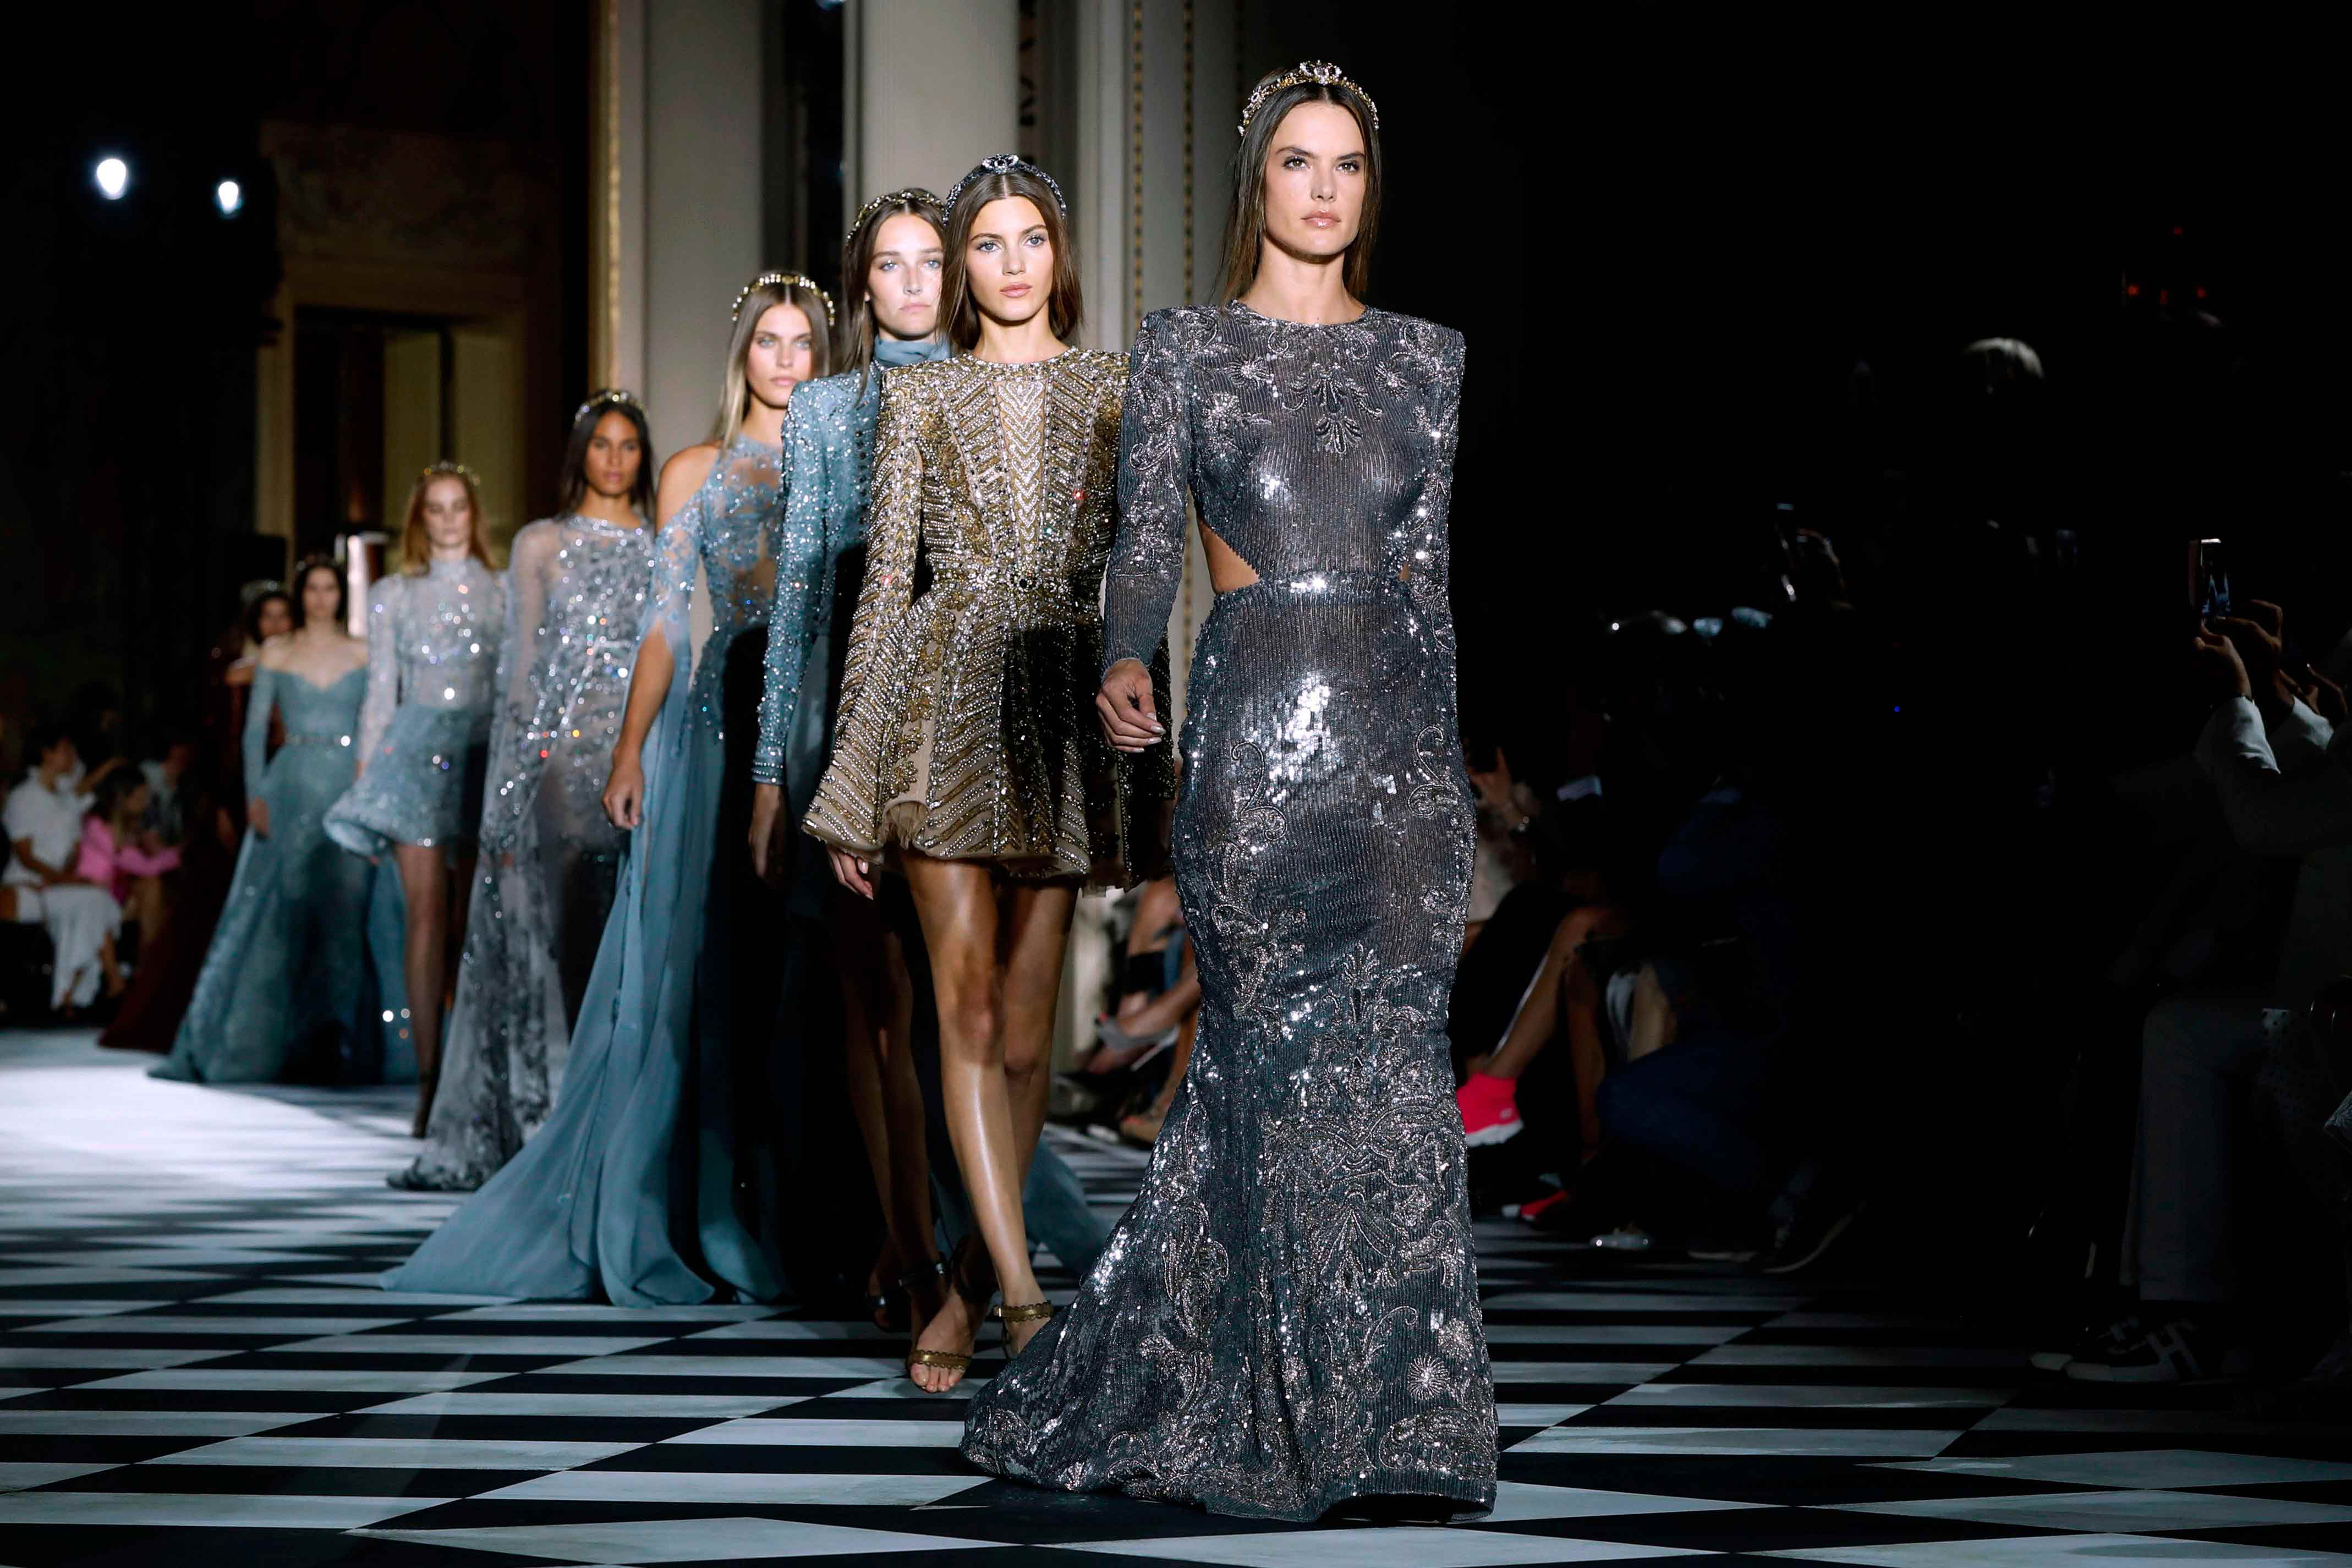 Supermodel Alessandra Ambrosio Opens For Zuhair Murad At Paris Couture Fashion Week